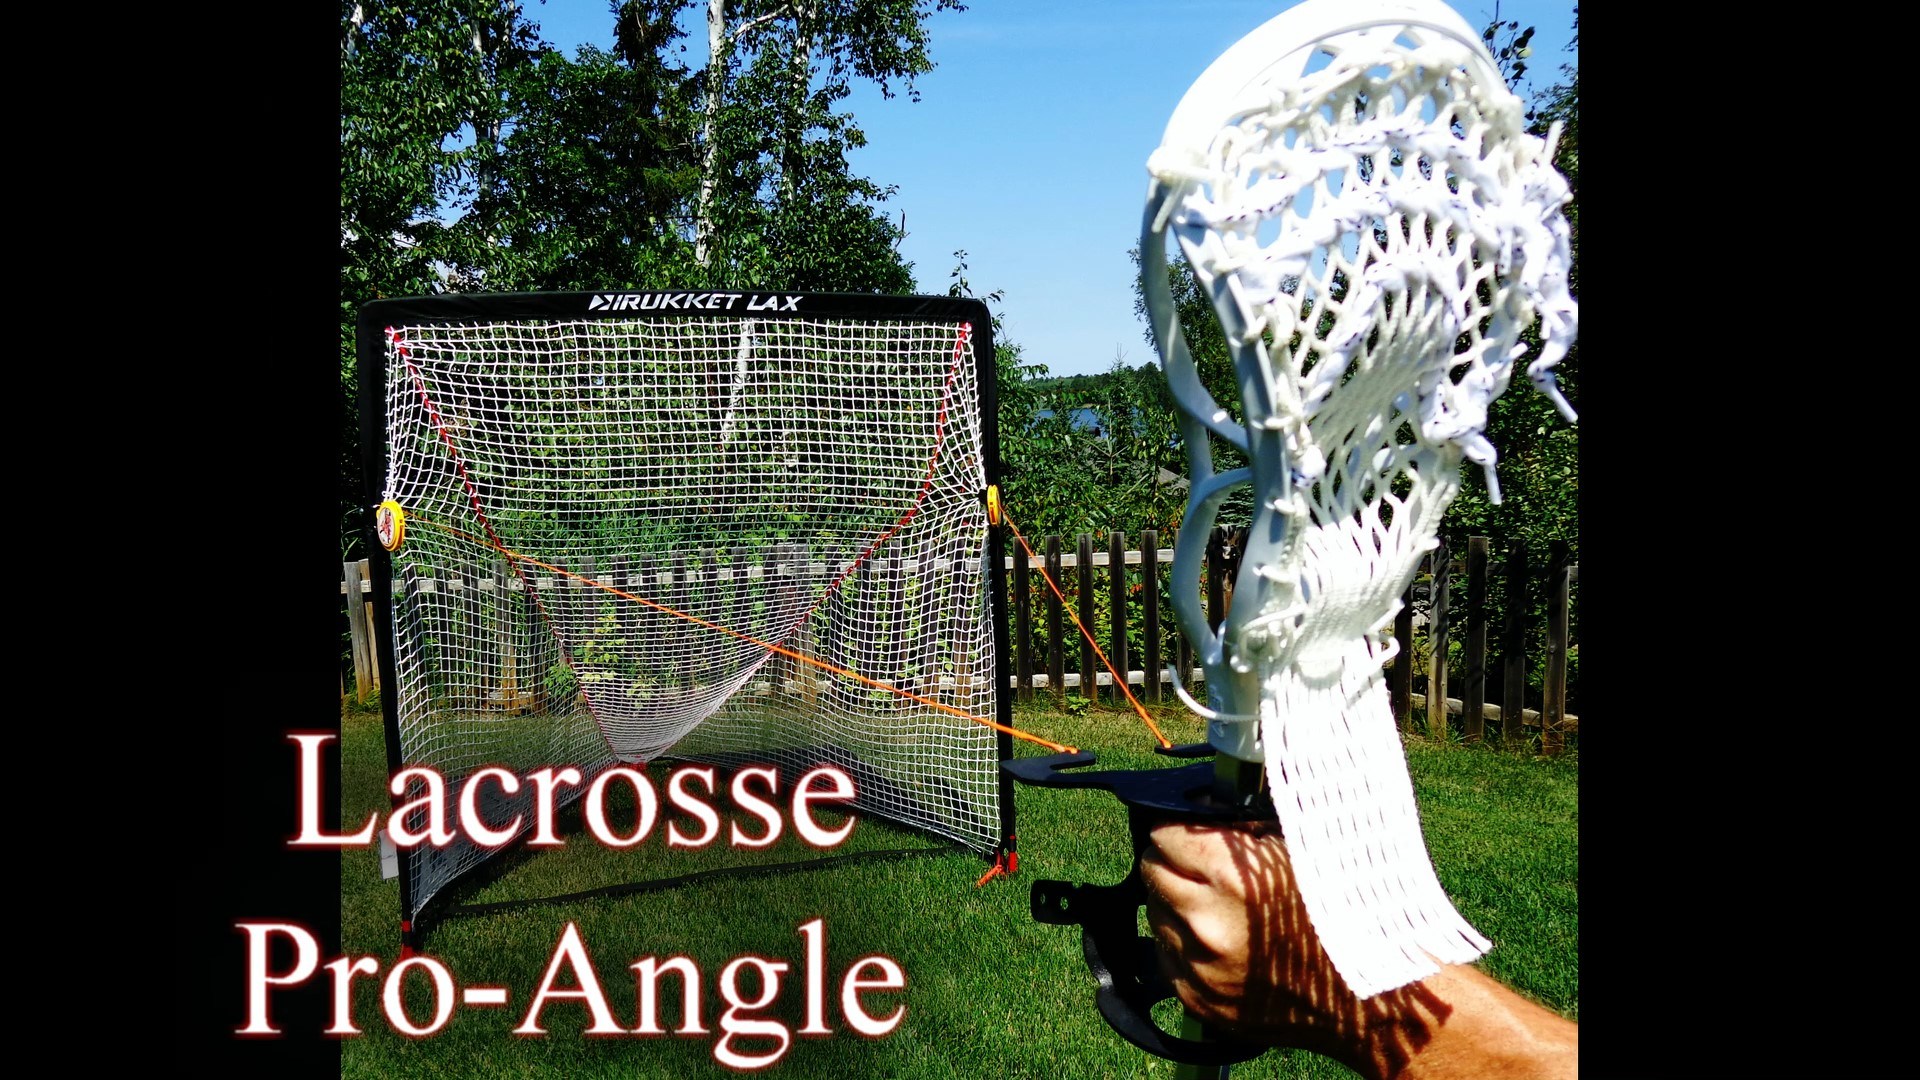 The Lacrosse Pro-Angle by Goaltenders BFF